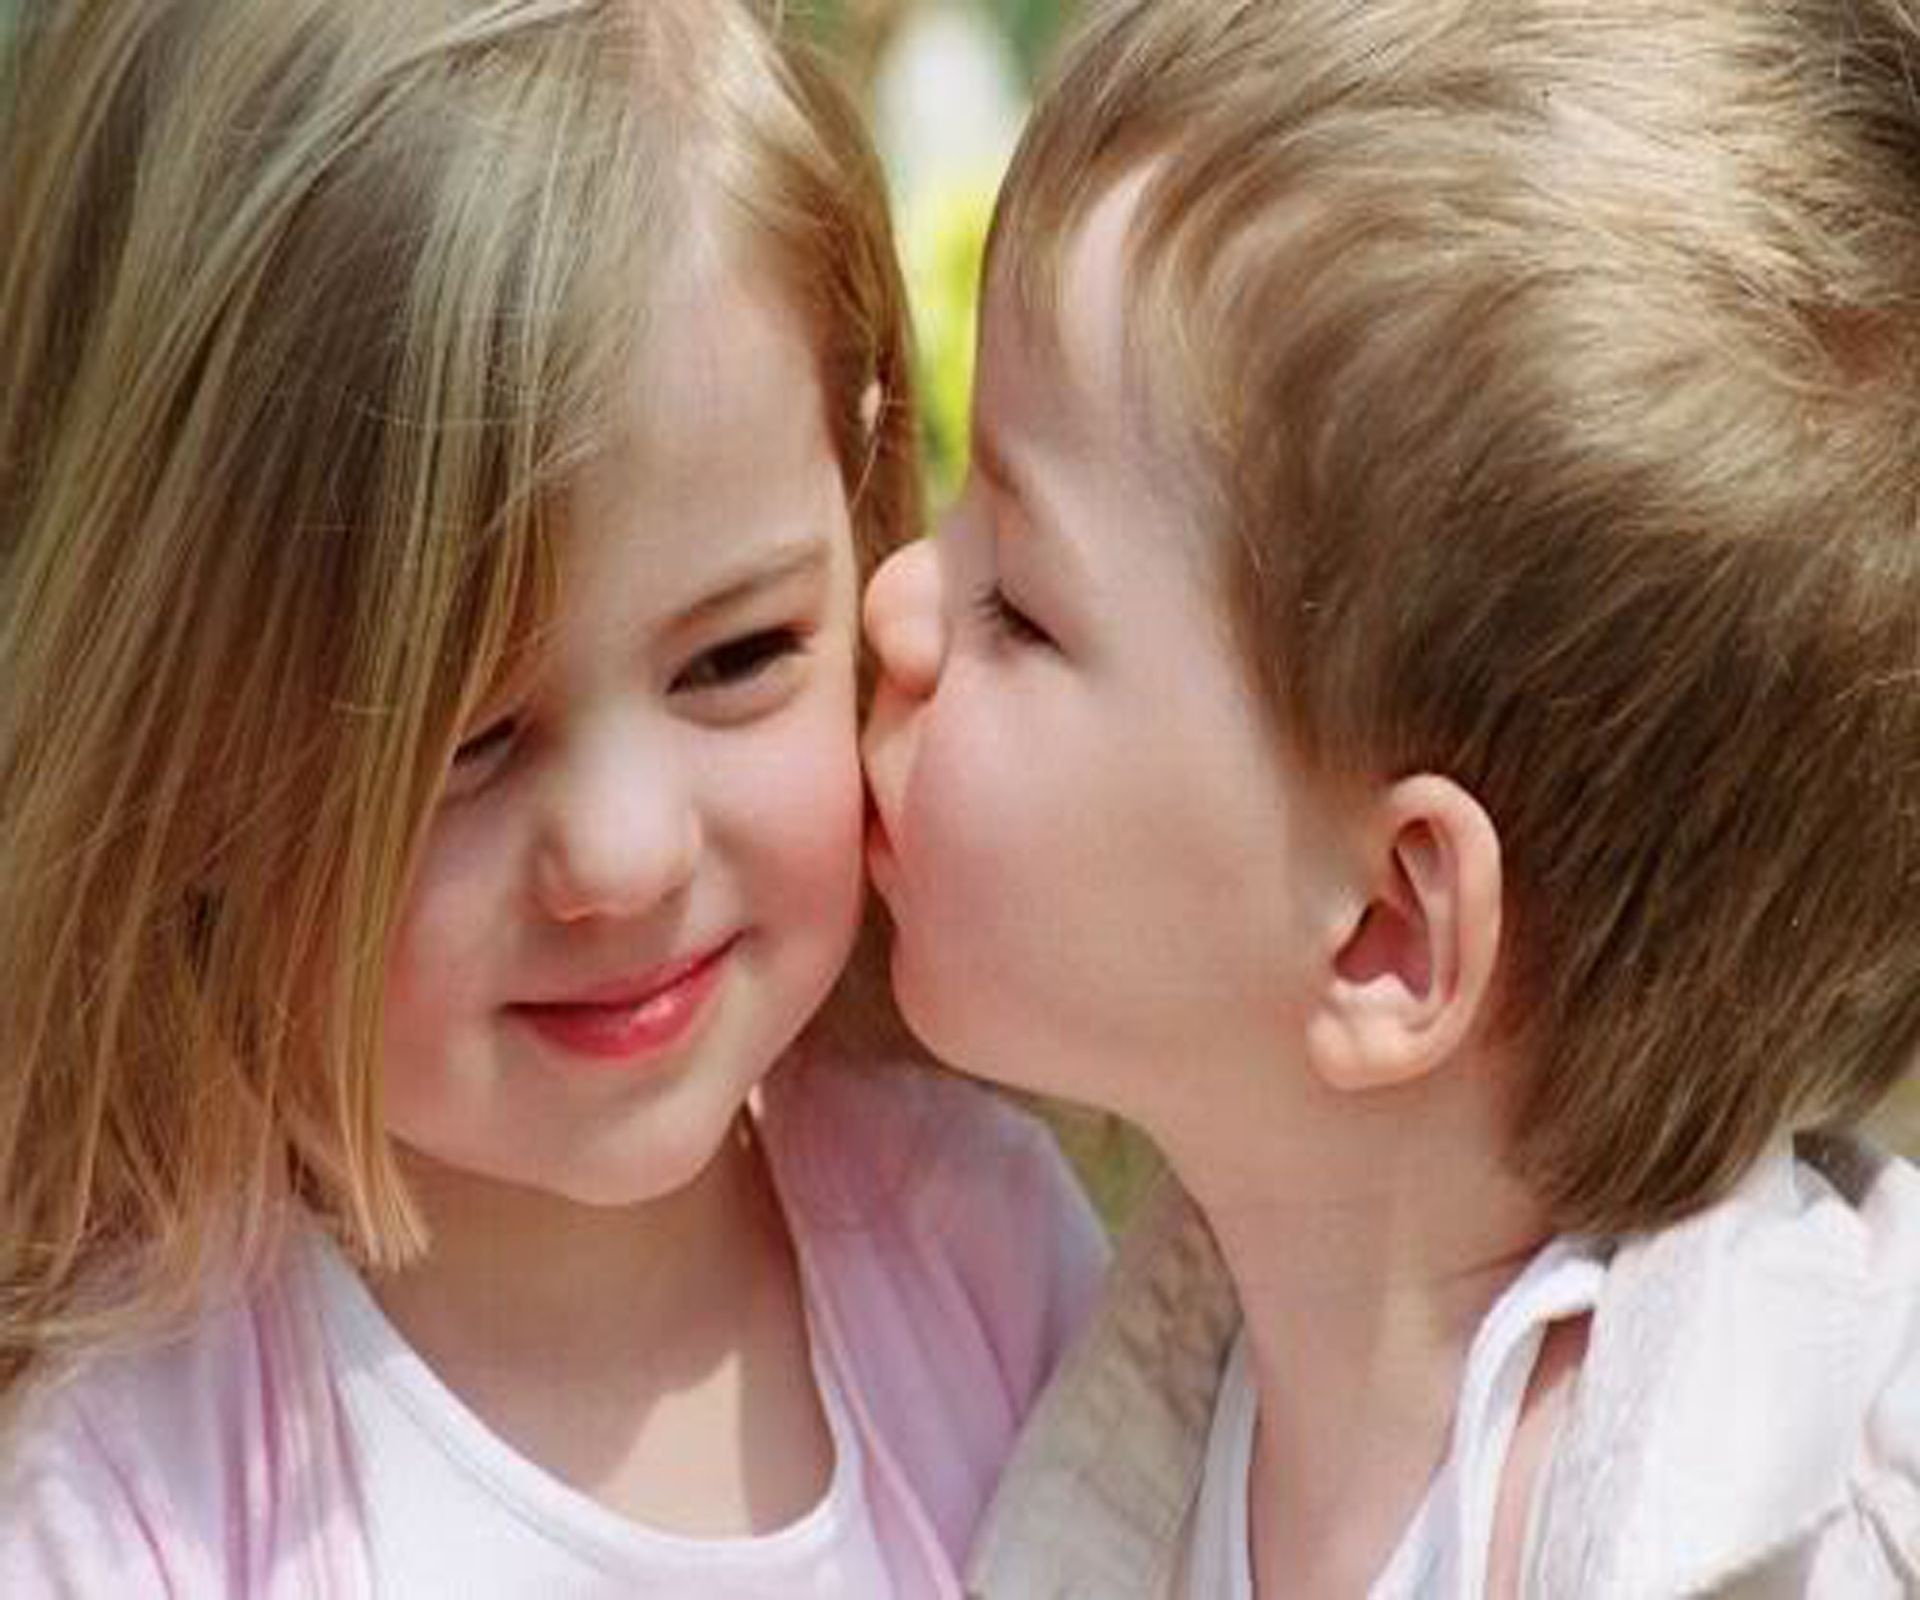 Kissing Wallpapers HD 2018 65 images 1920x1600